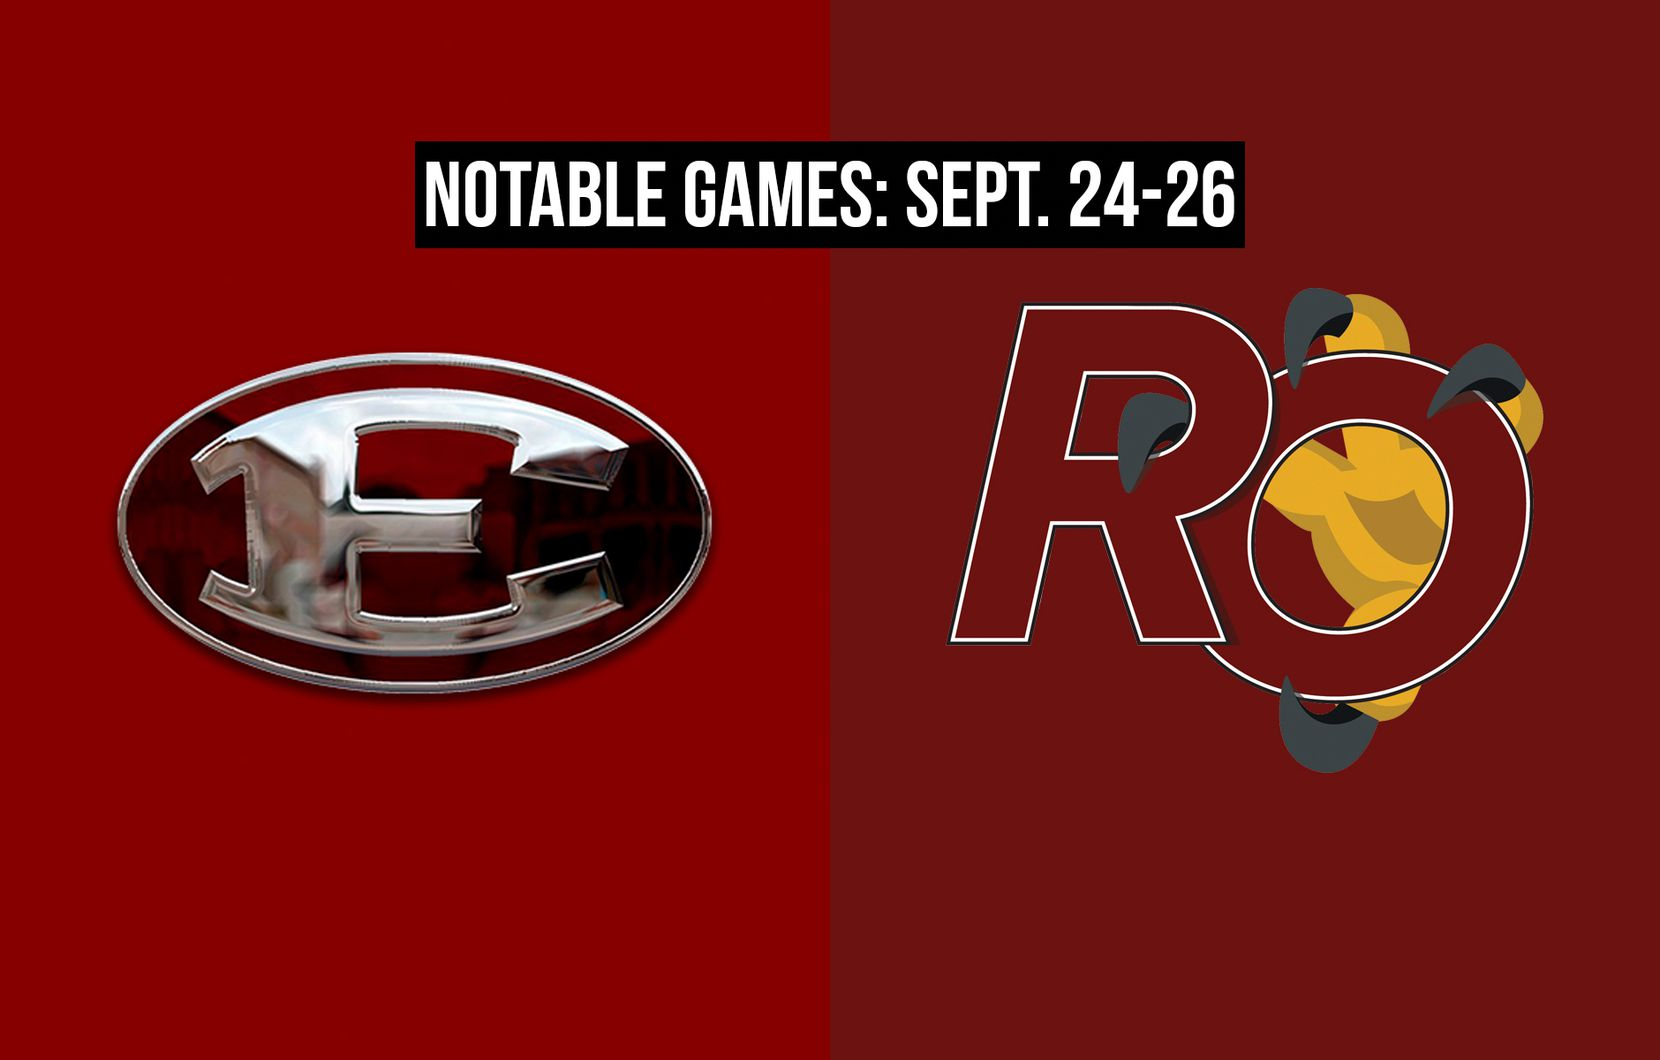 Notable games for the week of Sept. 24-26 of the 2020 season: Ennis vs. Red Oak.